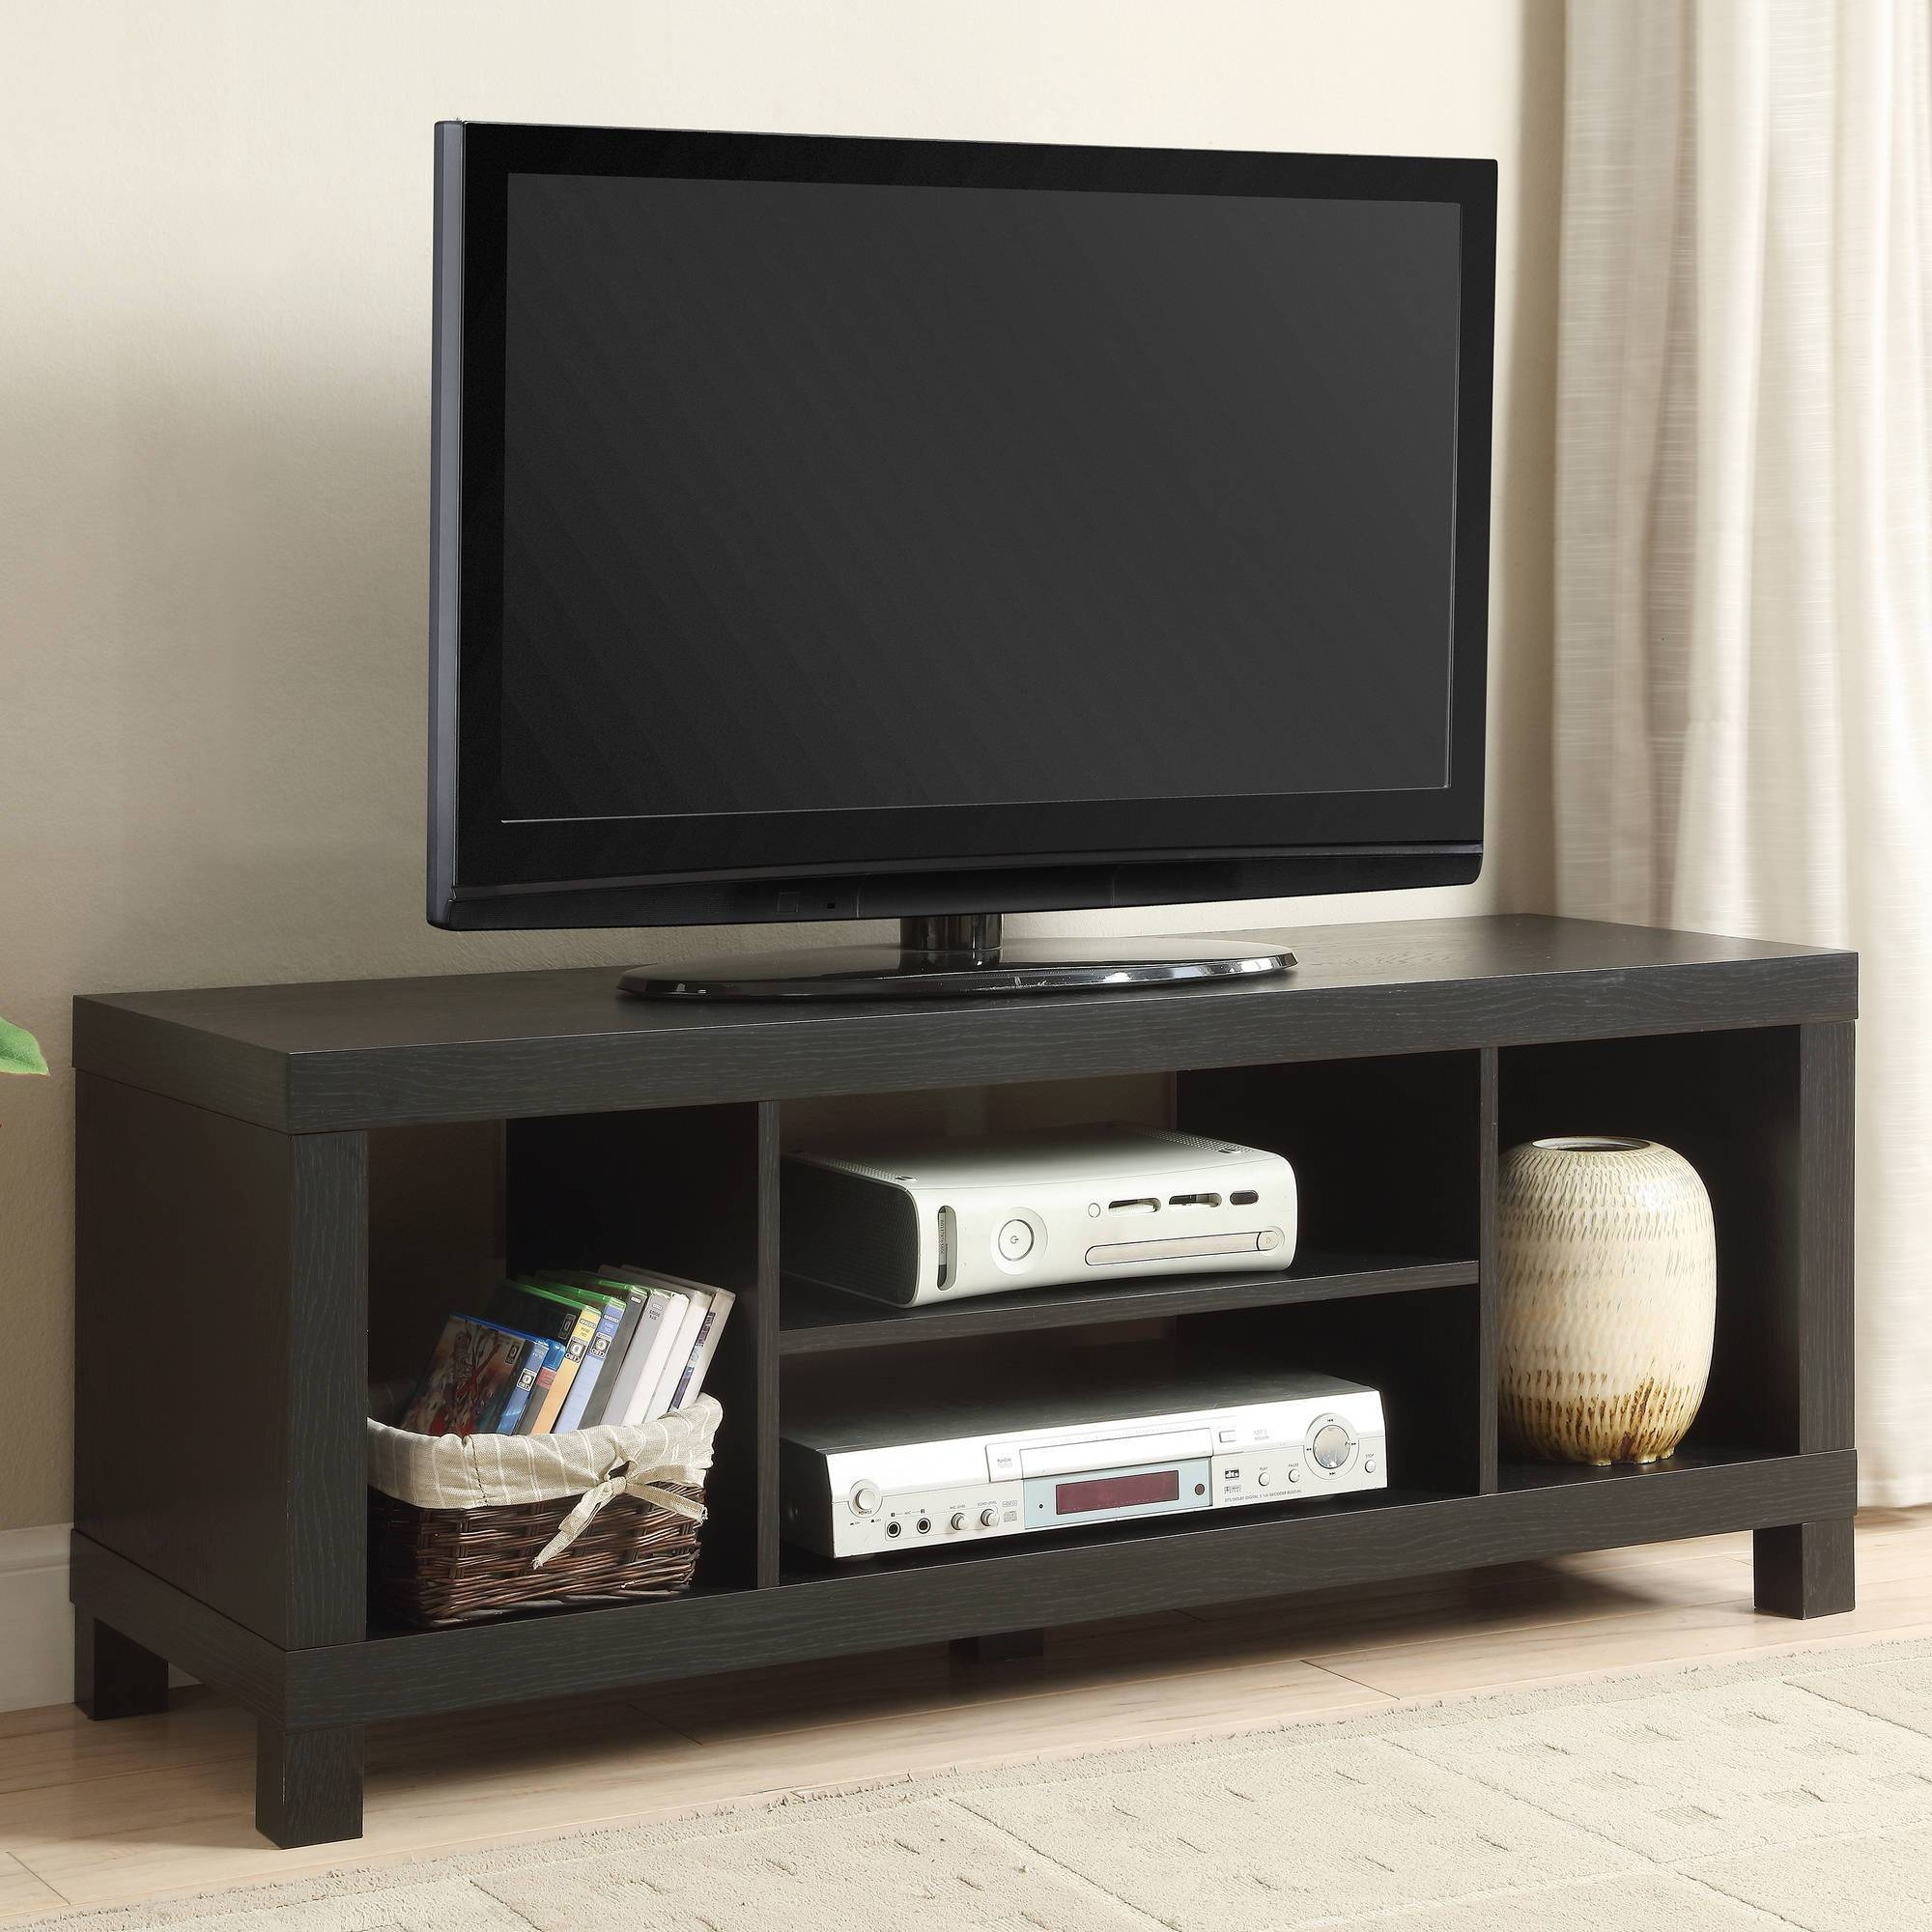 Living Room : Magnificent 158 Marvelous Pictures Of Sears Tv for Cabinet Tv Stands (Image 6 of 15)